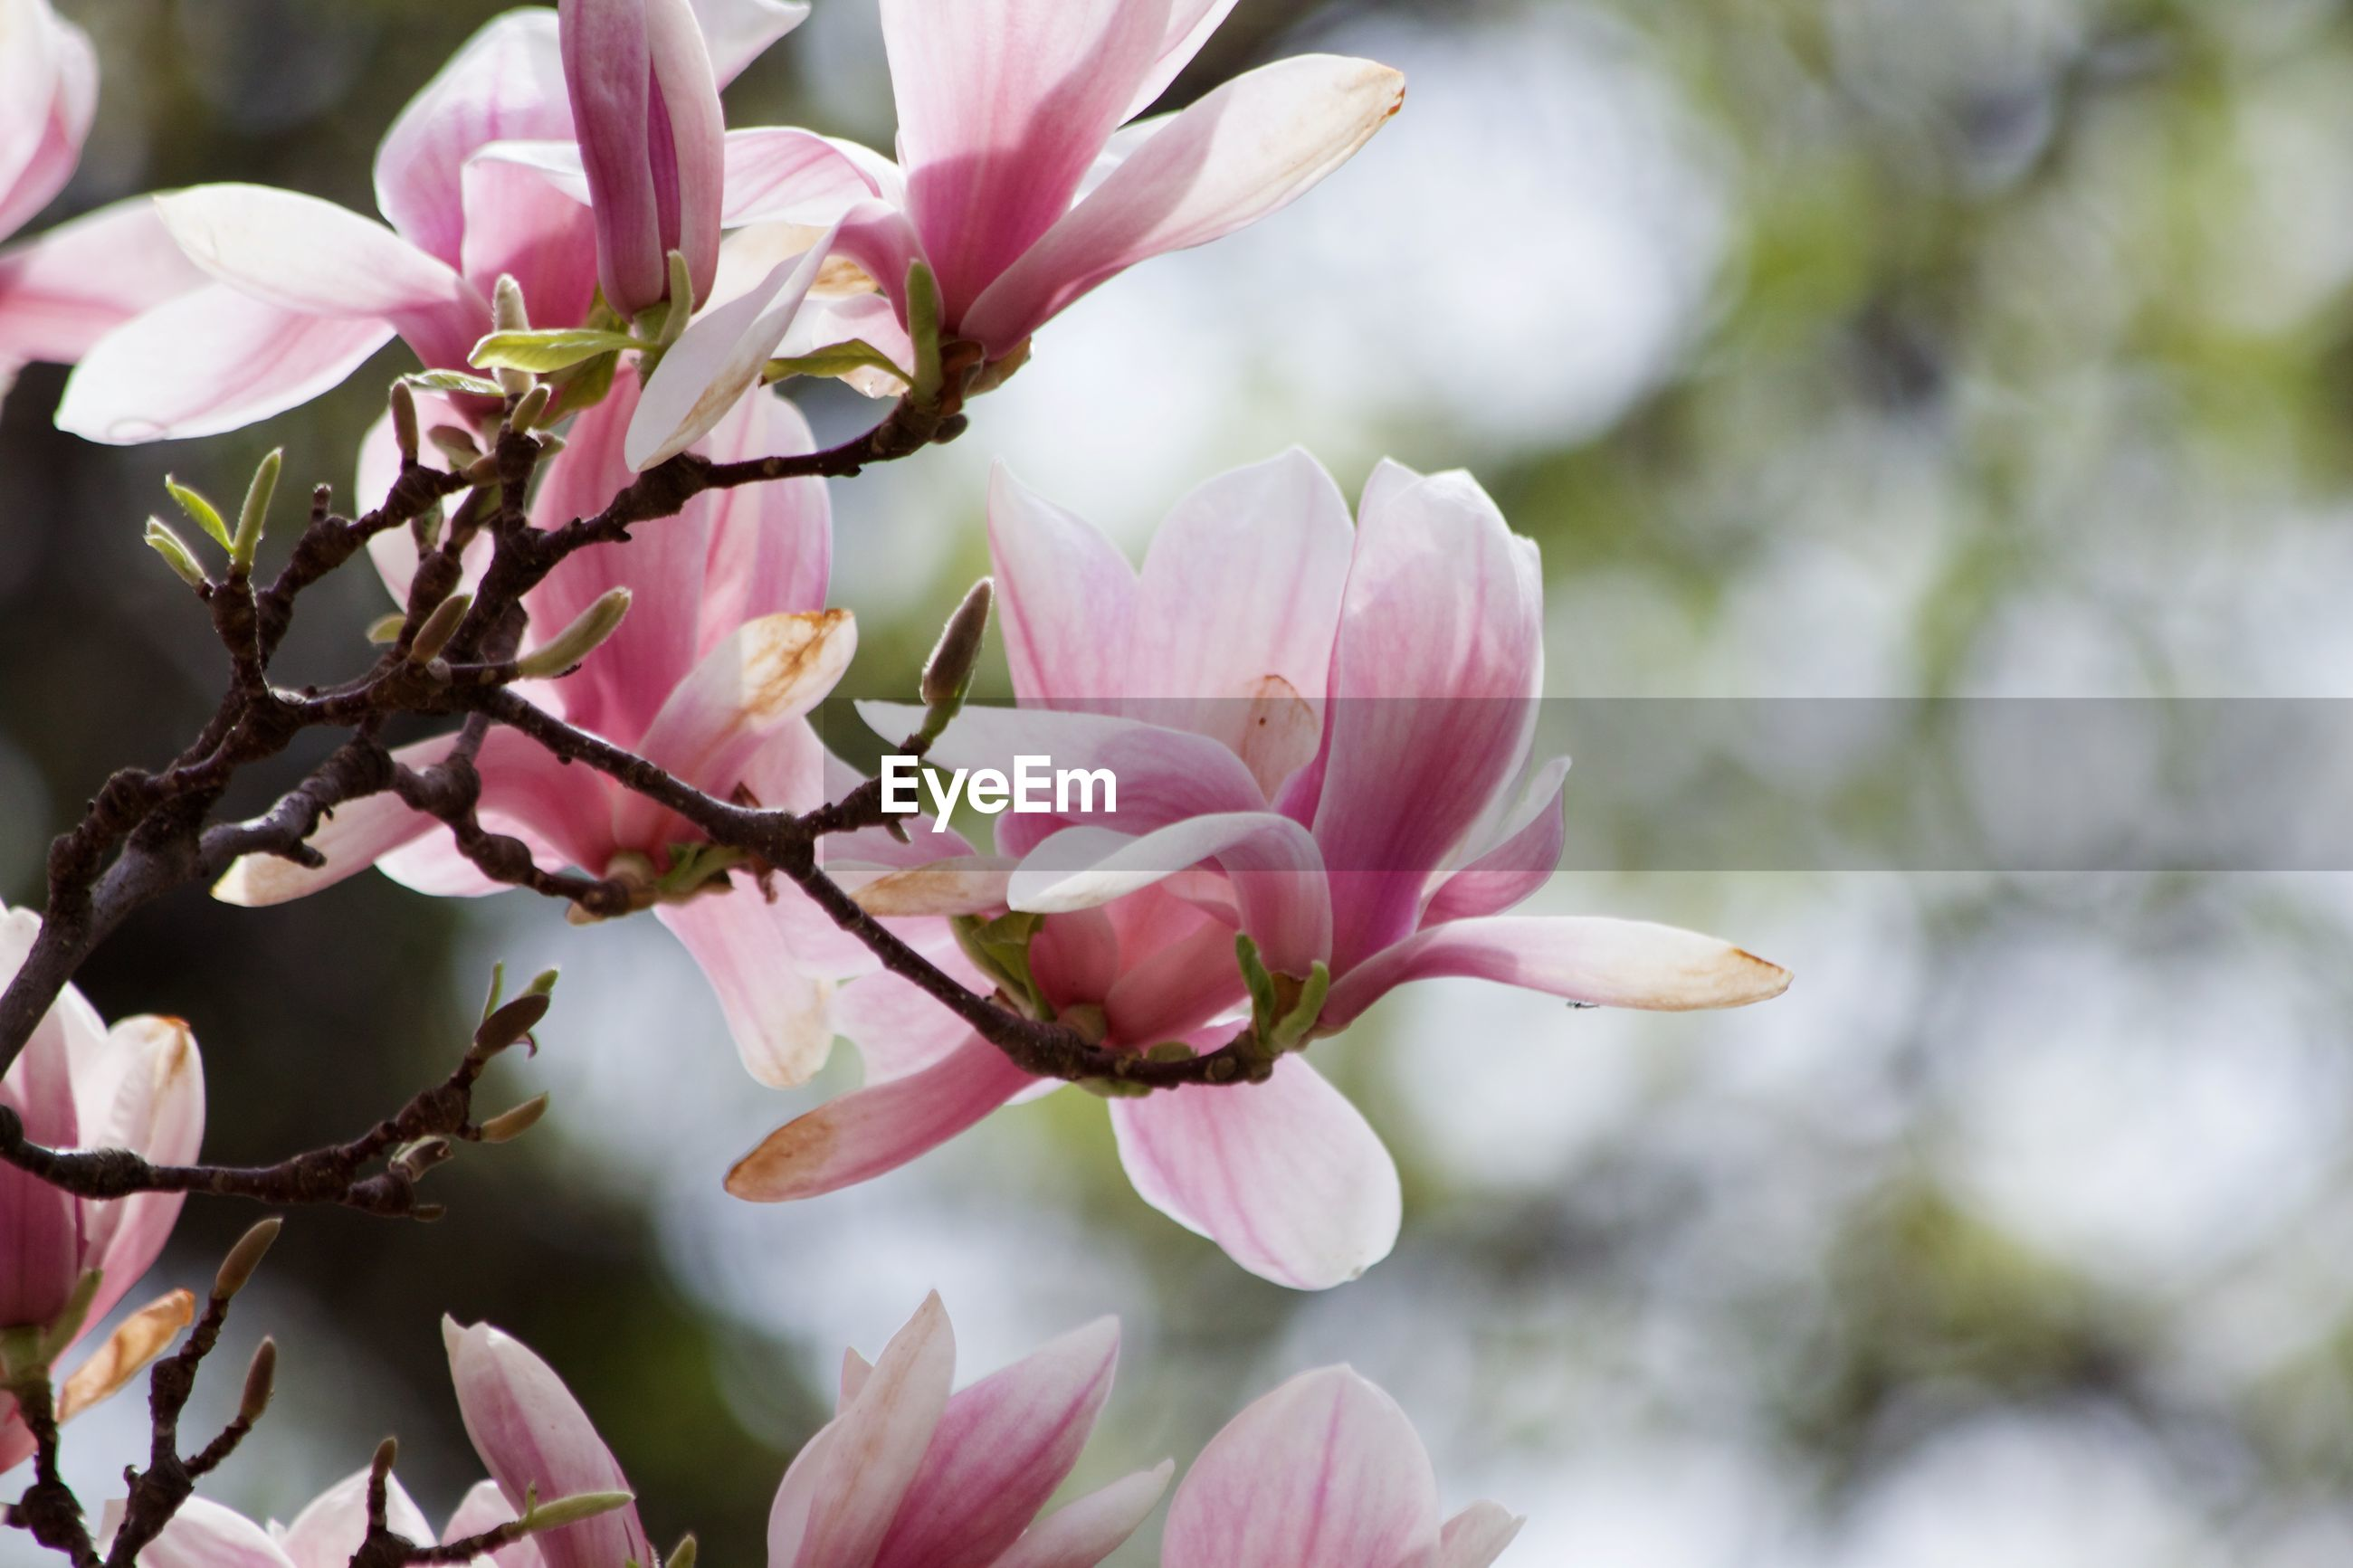 Close-up of pink magnolia flowers